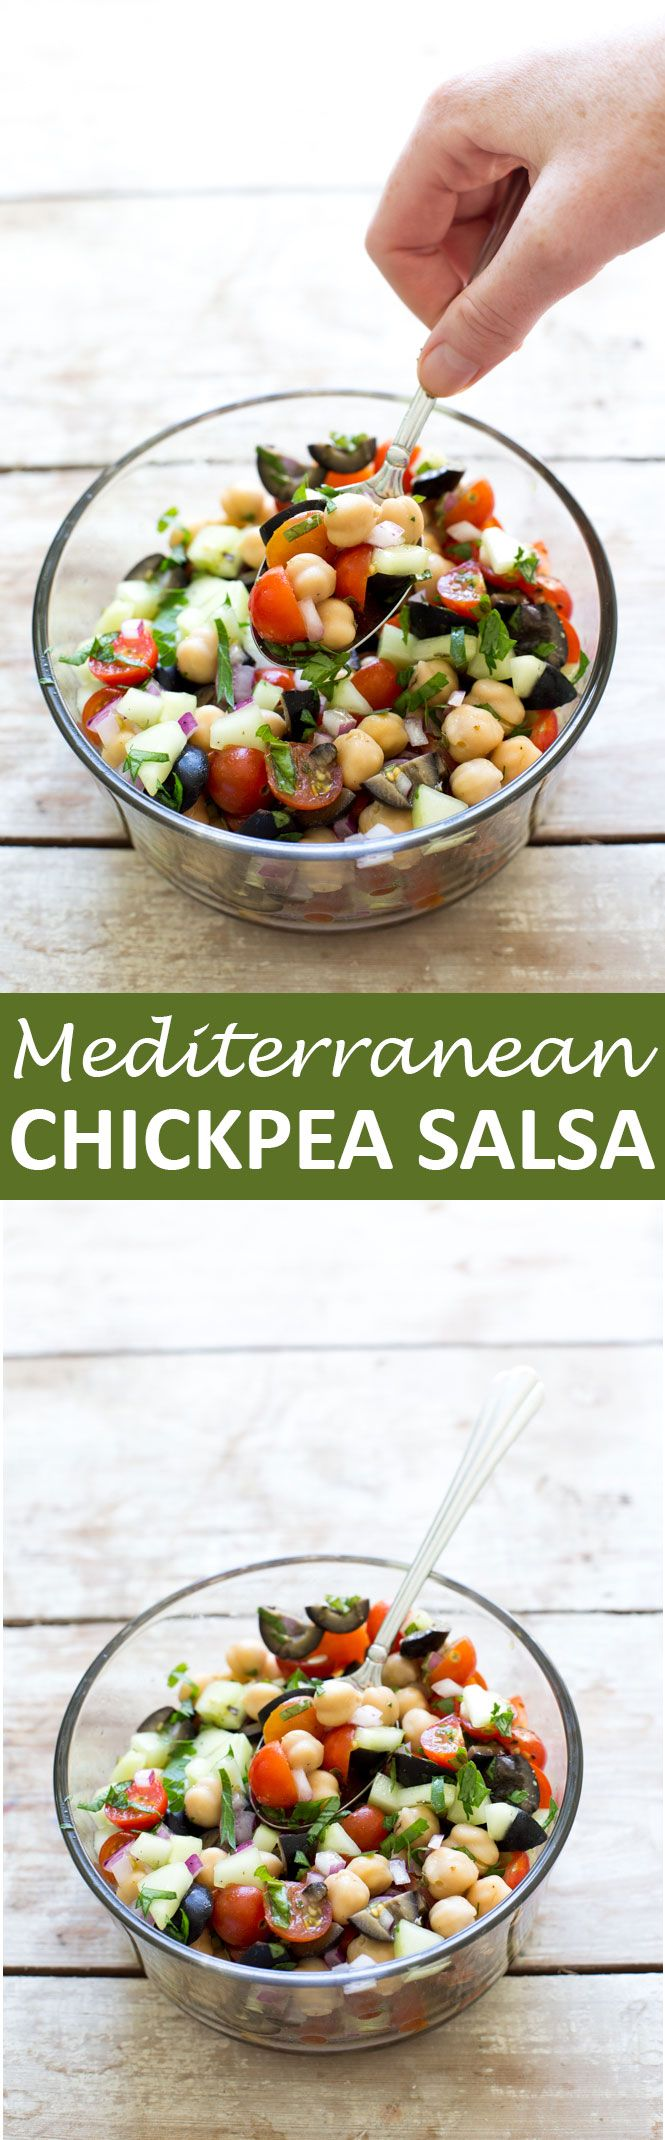 Super Easy Mediterranean Salsa. Light, healthy and loaded with tons of flavor. Serve as an appetizer or side dish!